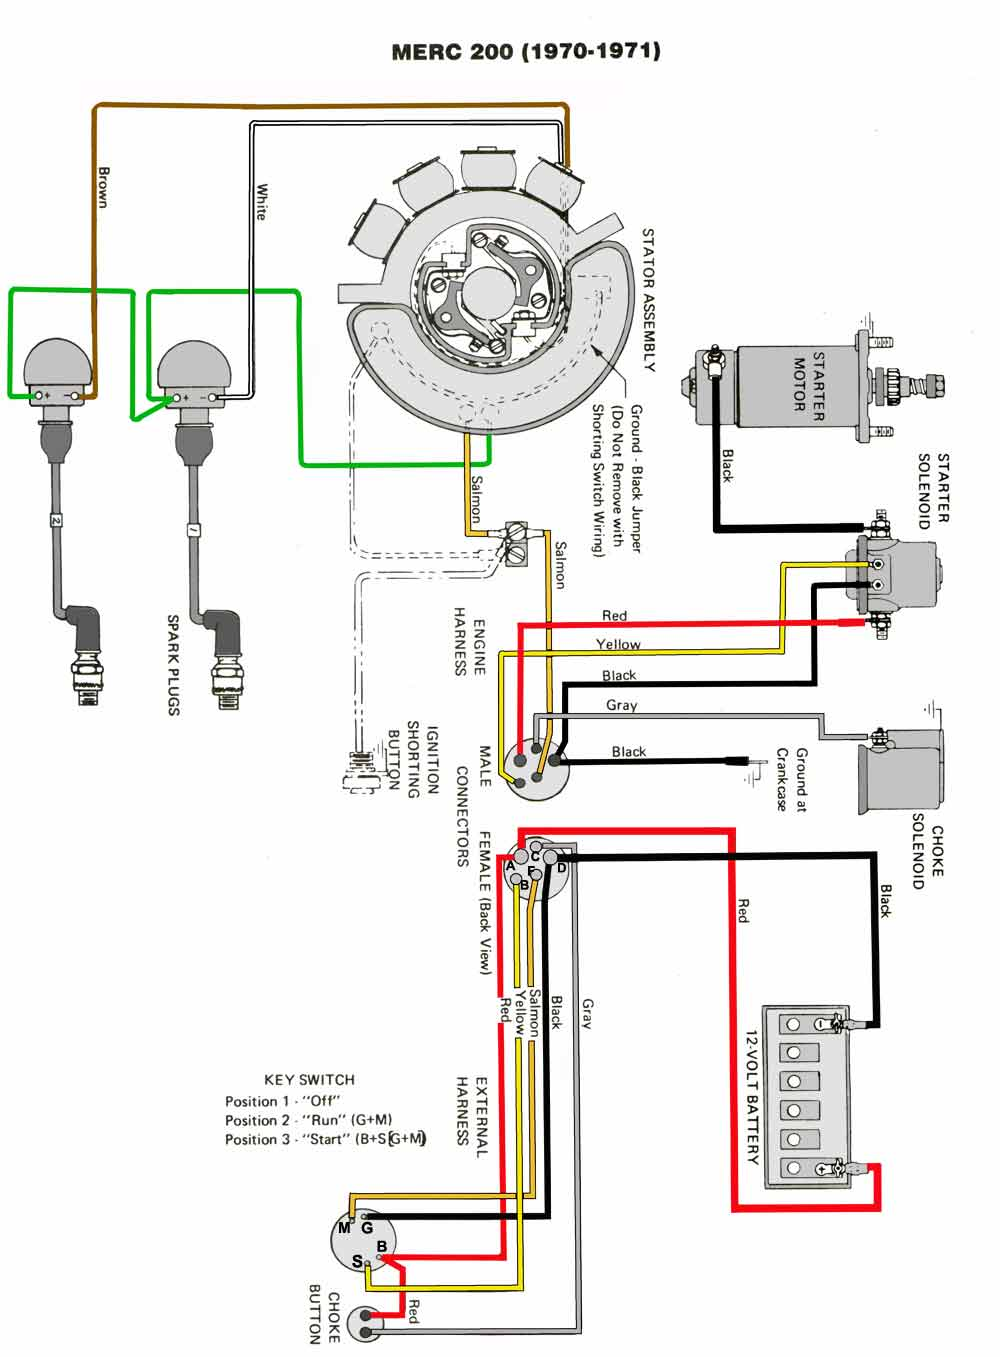 Mercury Outboard Wiring Harness Diagram For 1976 Mercruiser 470 Trim Control Wire Diagrams Mastertech Marininternal U0026 External Image